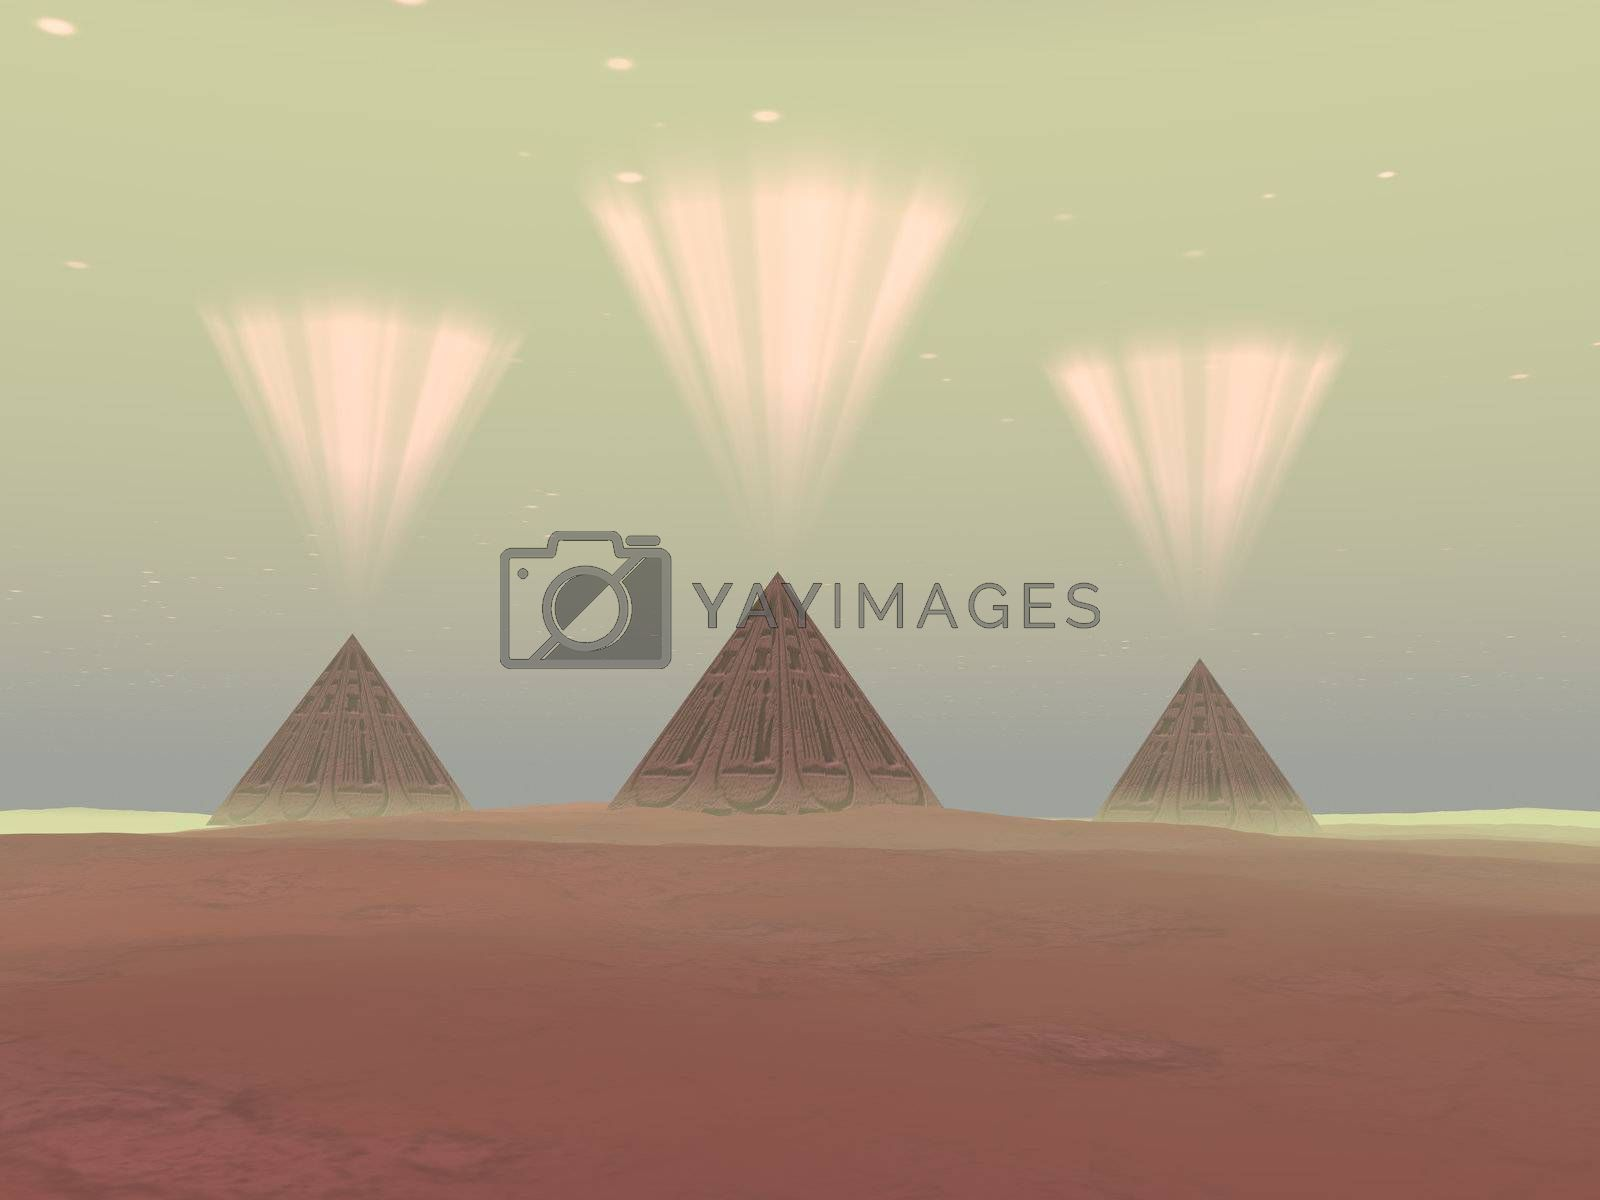 Royalty free image of COSMIC PYRAMIDS by Catmando